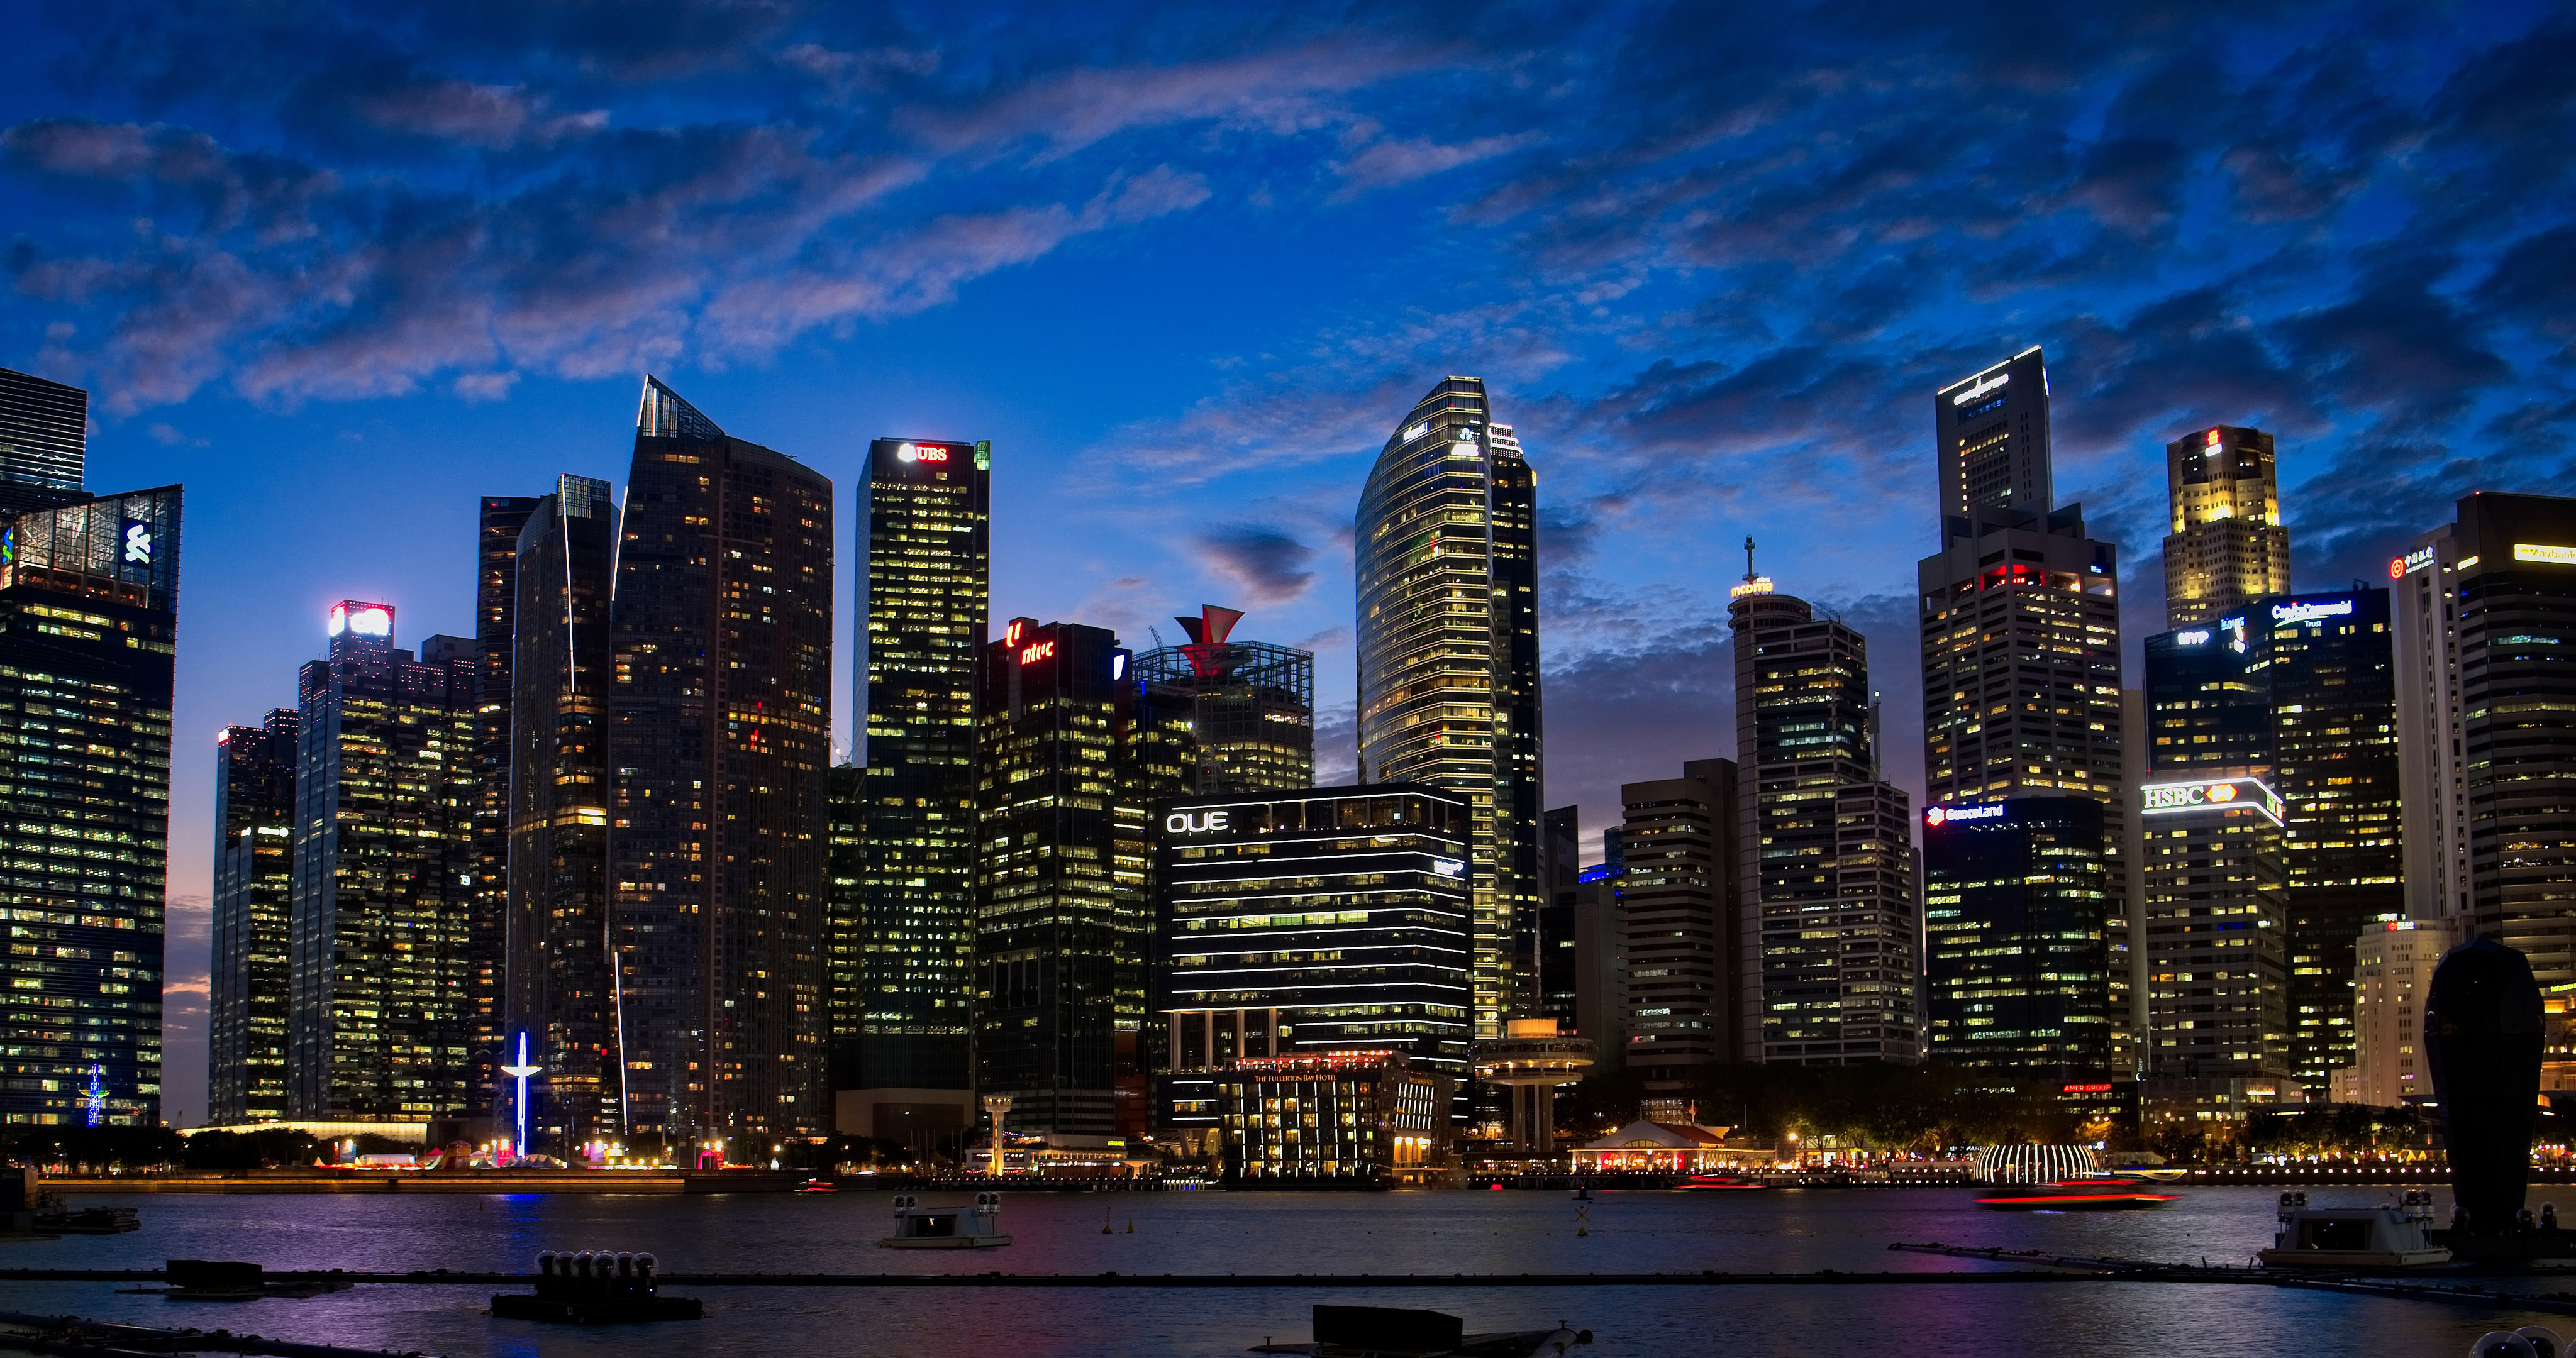 City Lights Buildings 4k Hd Photography 4k Wallpapers